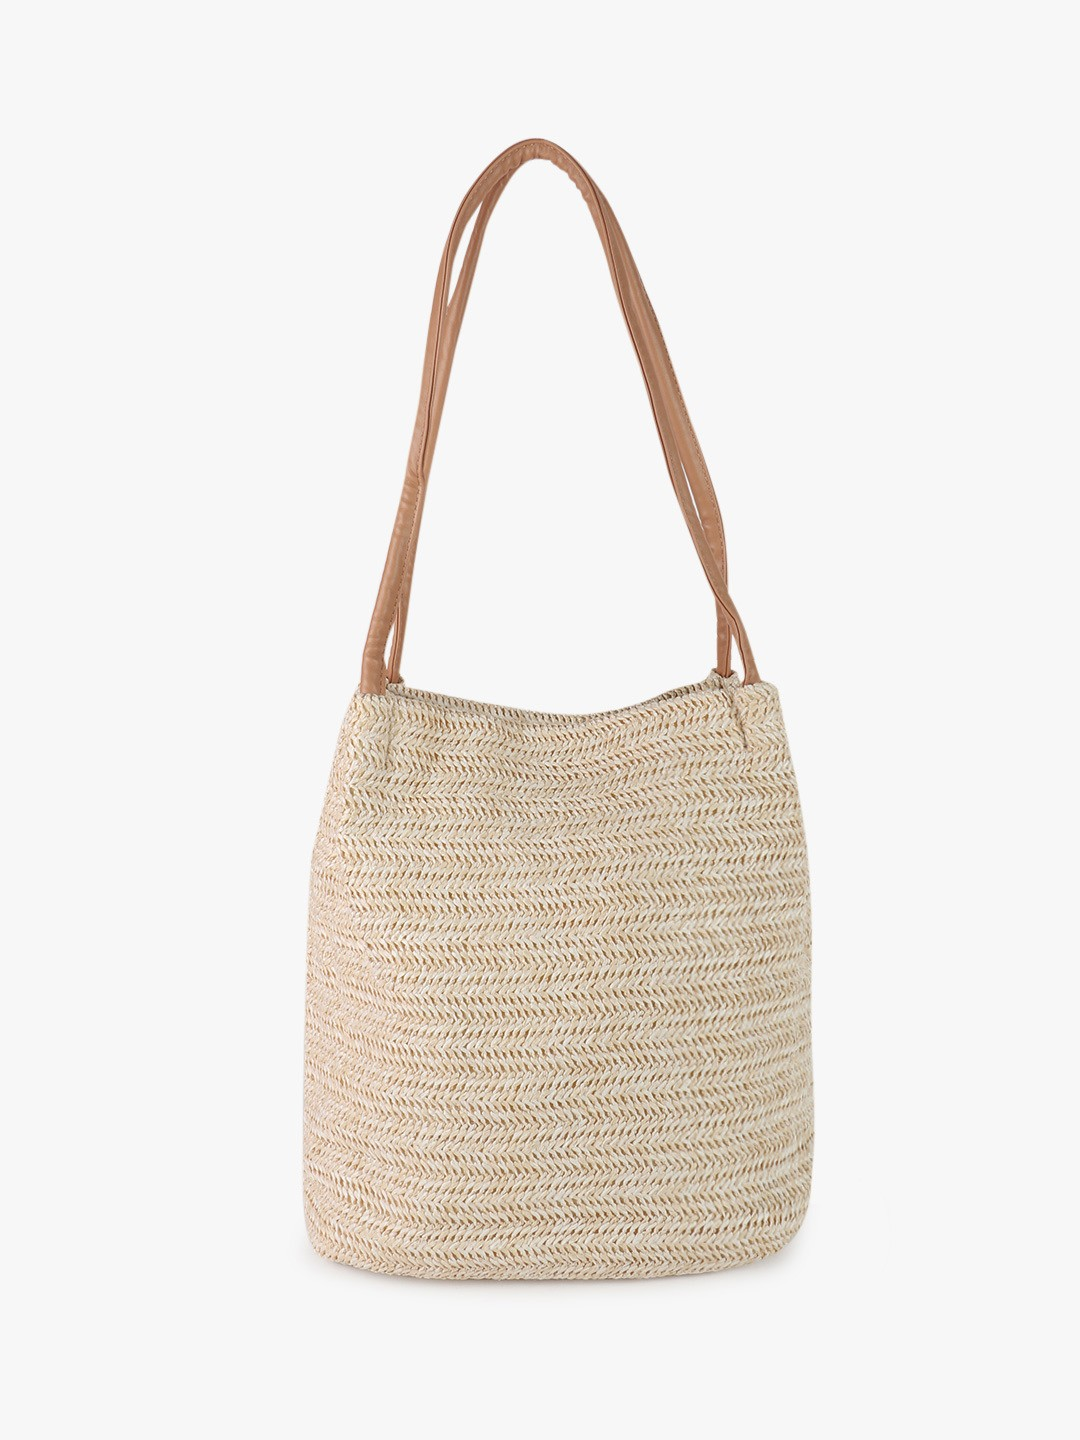 Origami Lily White Natural Wicker Tote Bag 1